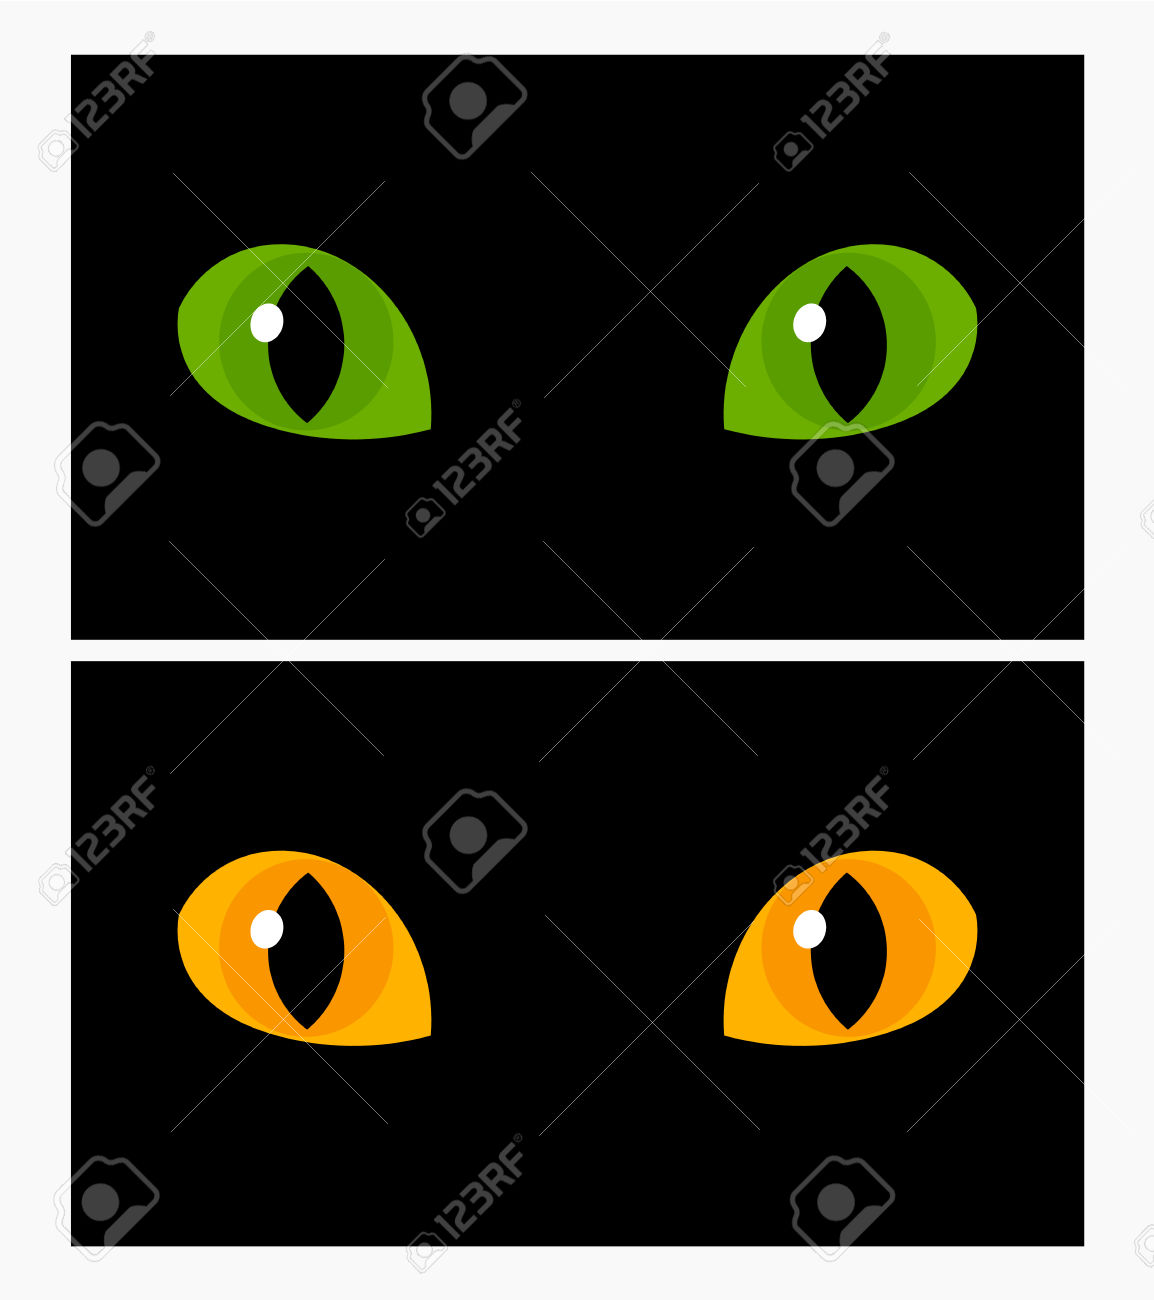 Yellow Eyes clipart #17, Download drawings